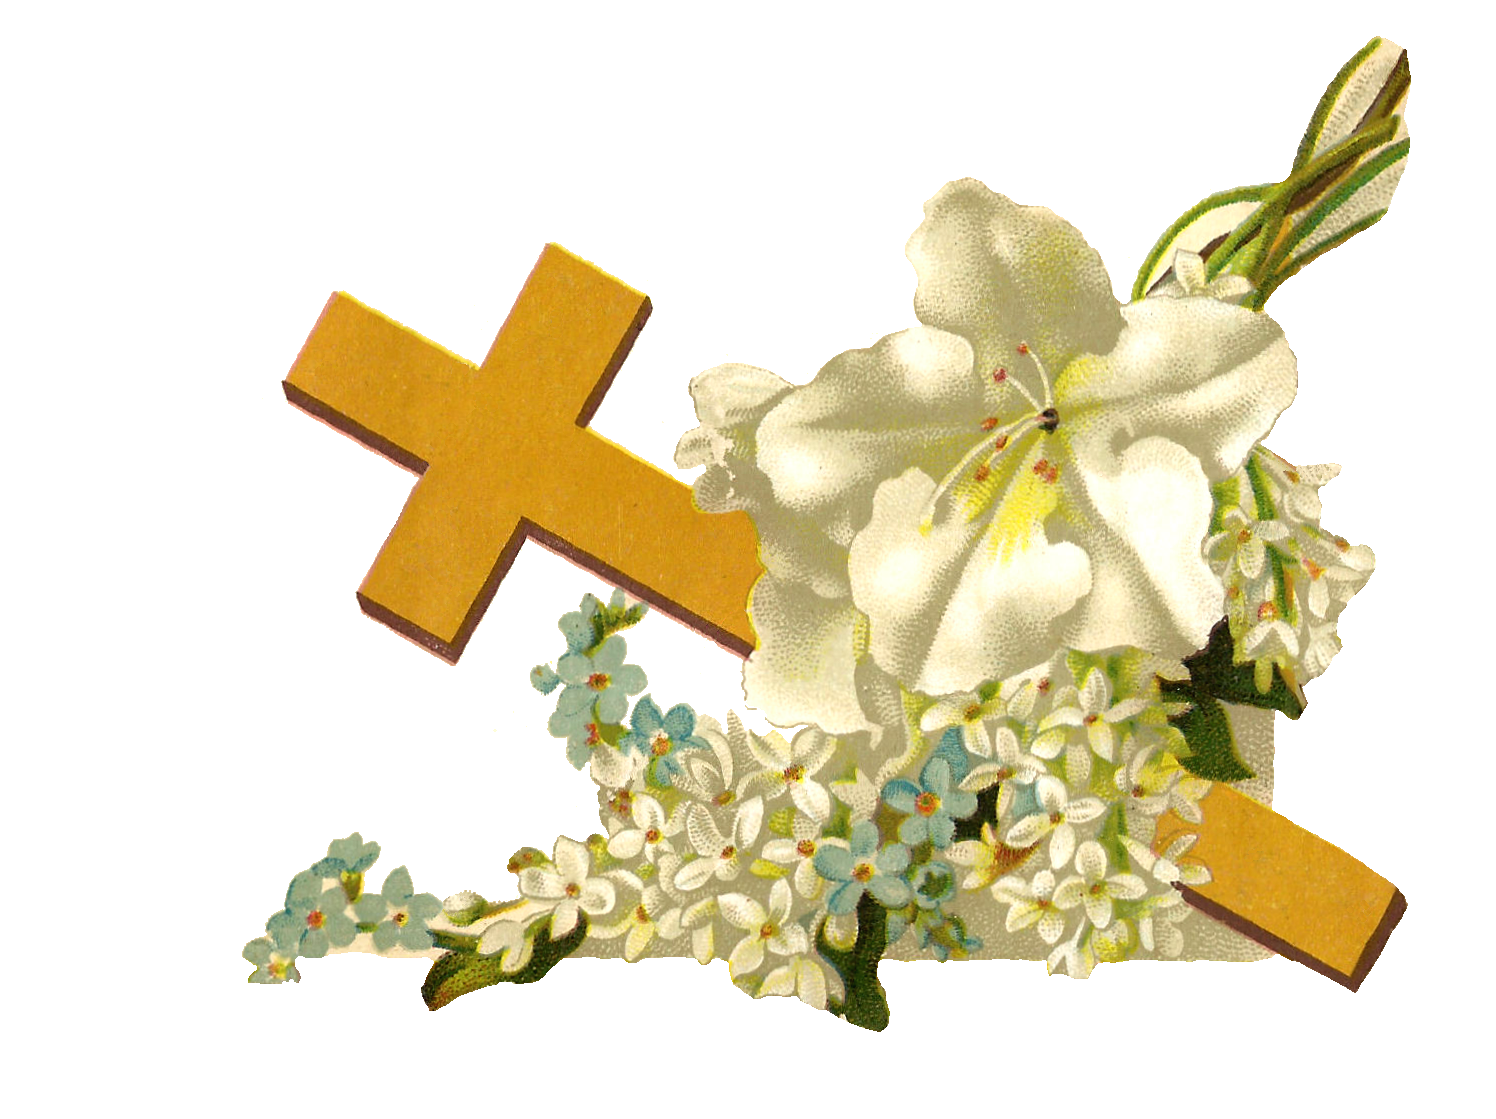 Easter flower cross clipart image transparent download Antique Images: Free Religious Clip Art: Gold Cross and White ... image transparent download